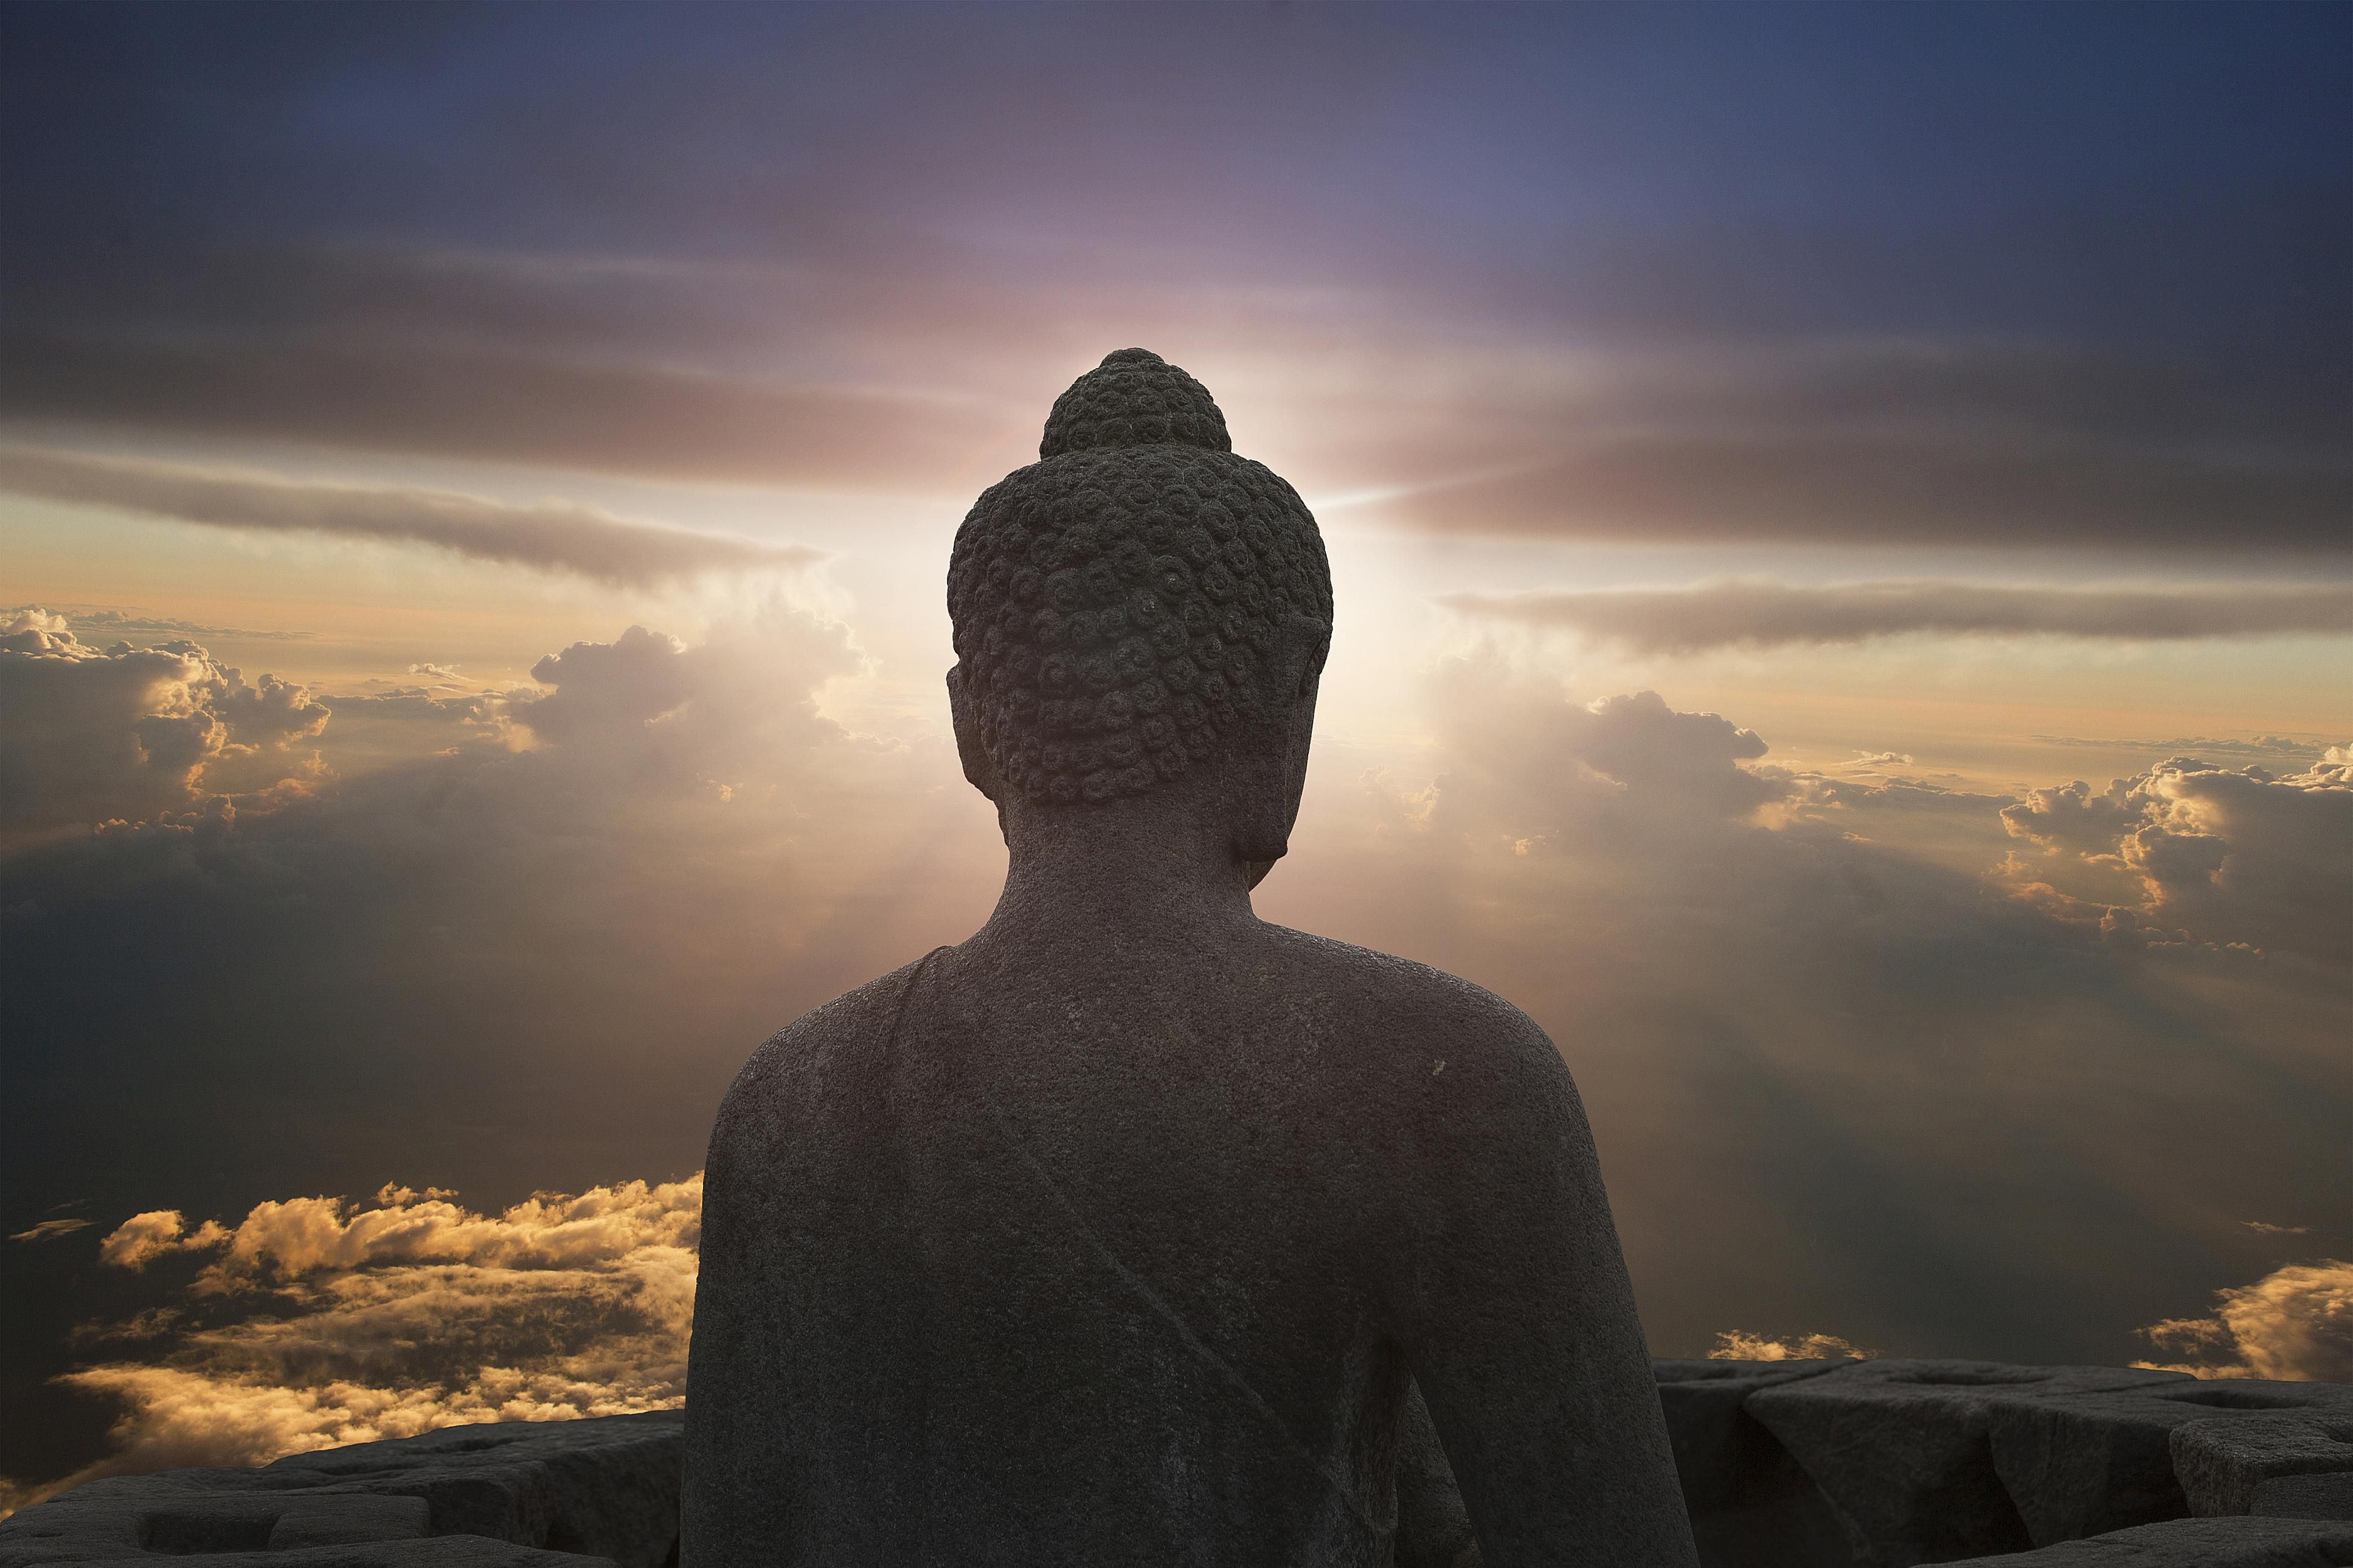 buddhist single men in selden 2 the nature of love and pleasure love there are different kinds of love, and these are variously expressed as motherly love, brotherly love, sensual love, emotional love, sexual love, selfish love, selfless love, and universal love.